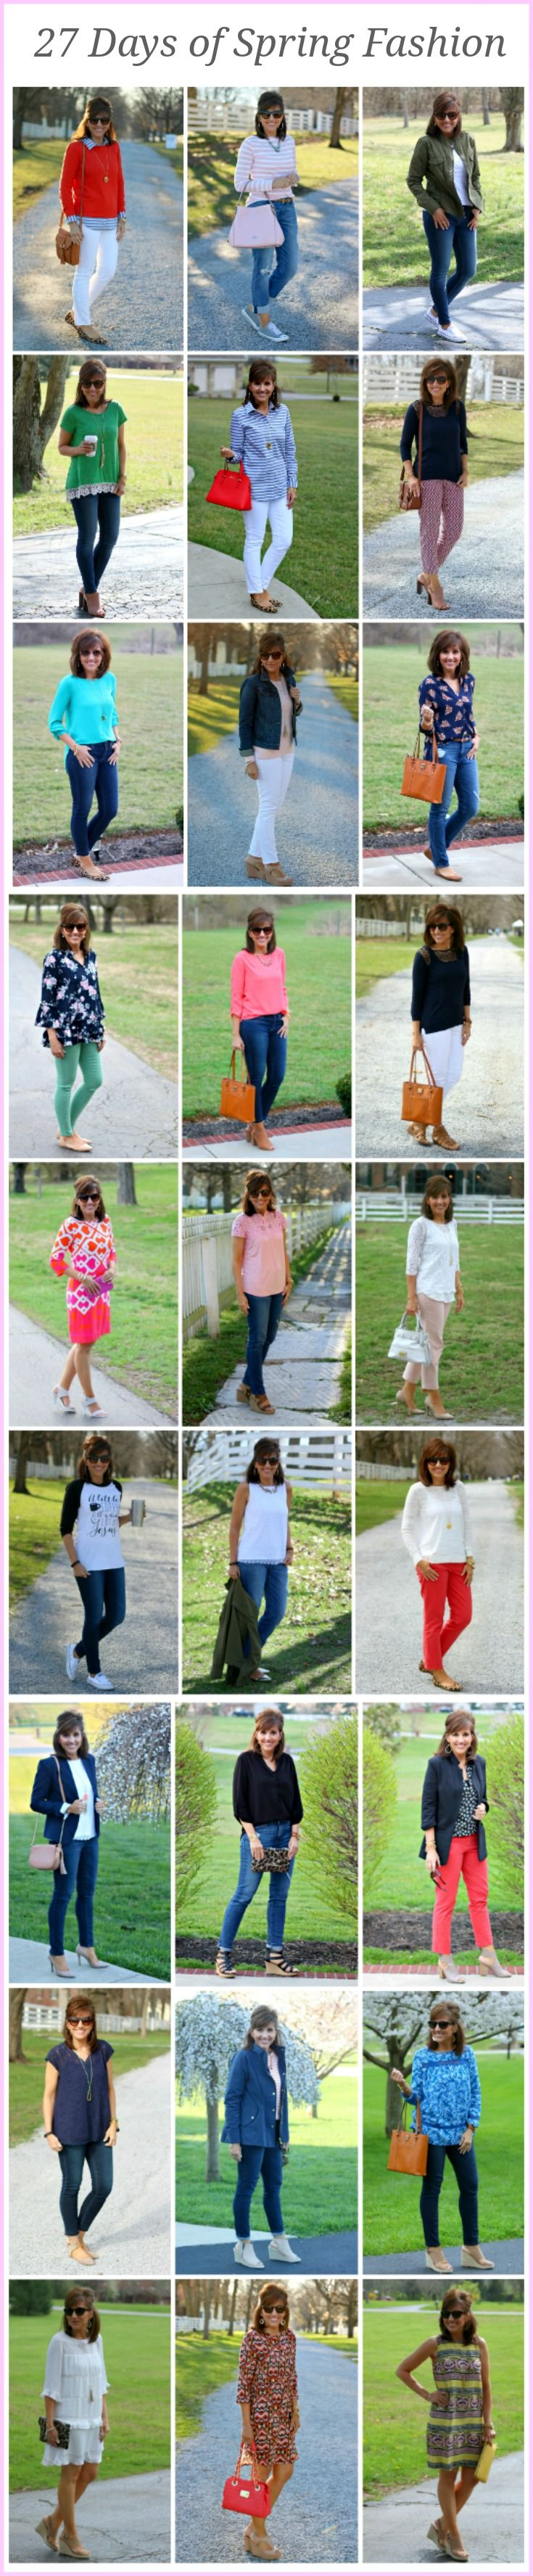 27 Days of Spring Fashion for women over 40